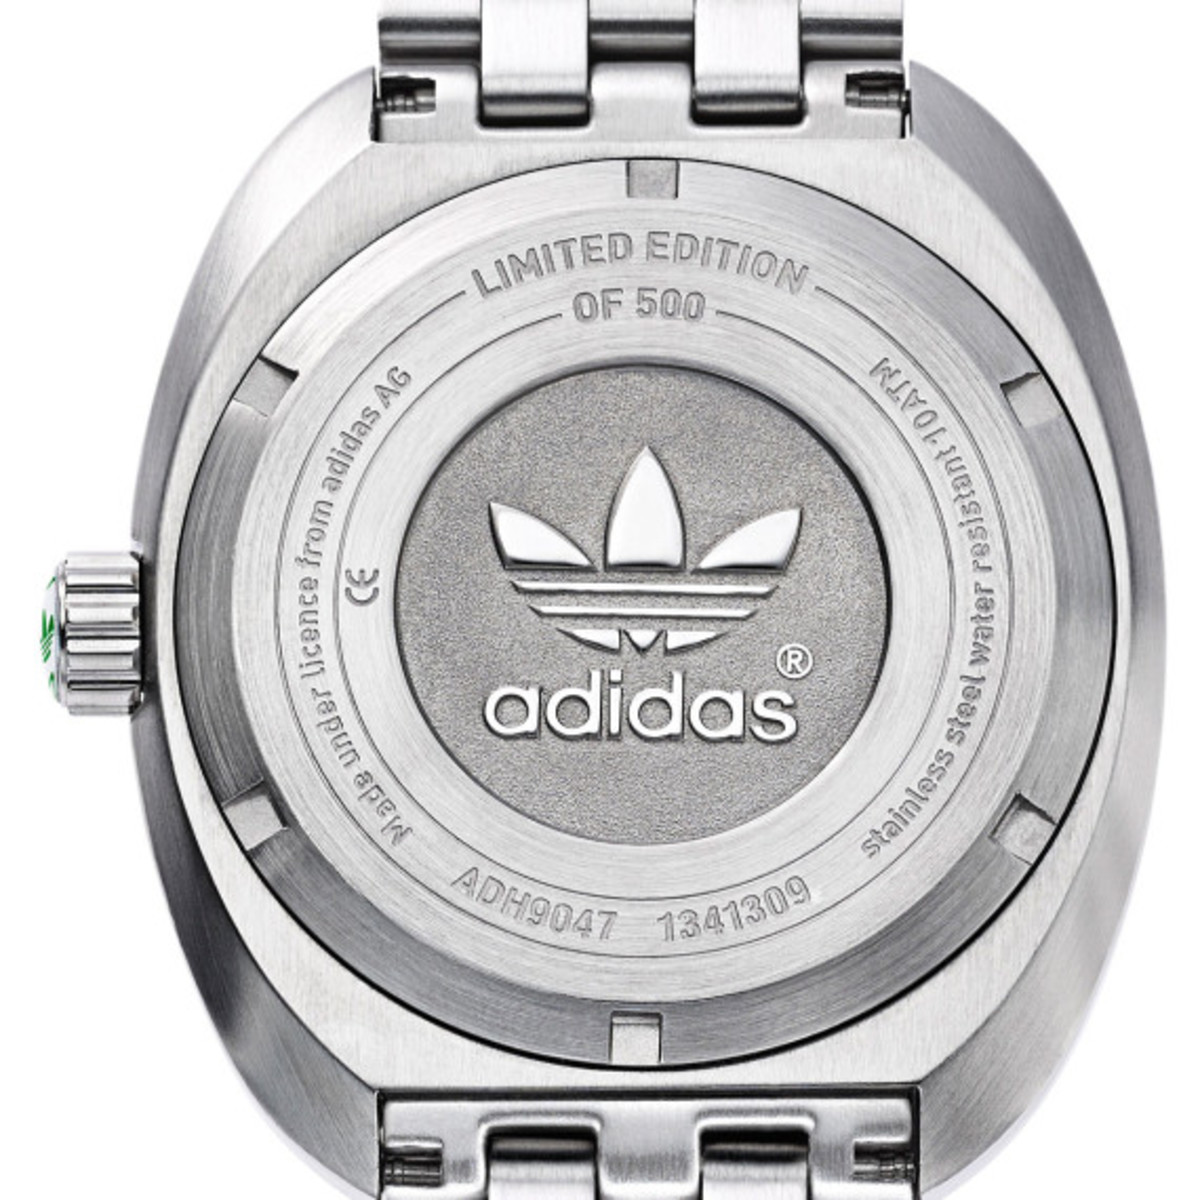 adidas Originals - Stan Smith Limited Edition Watch - 7